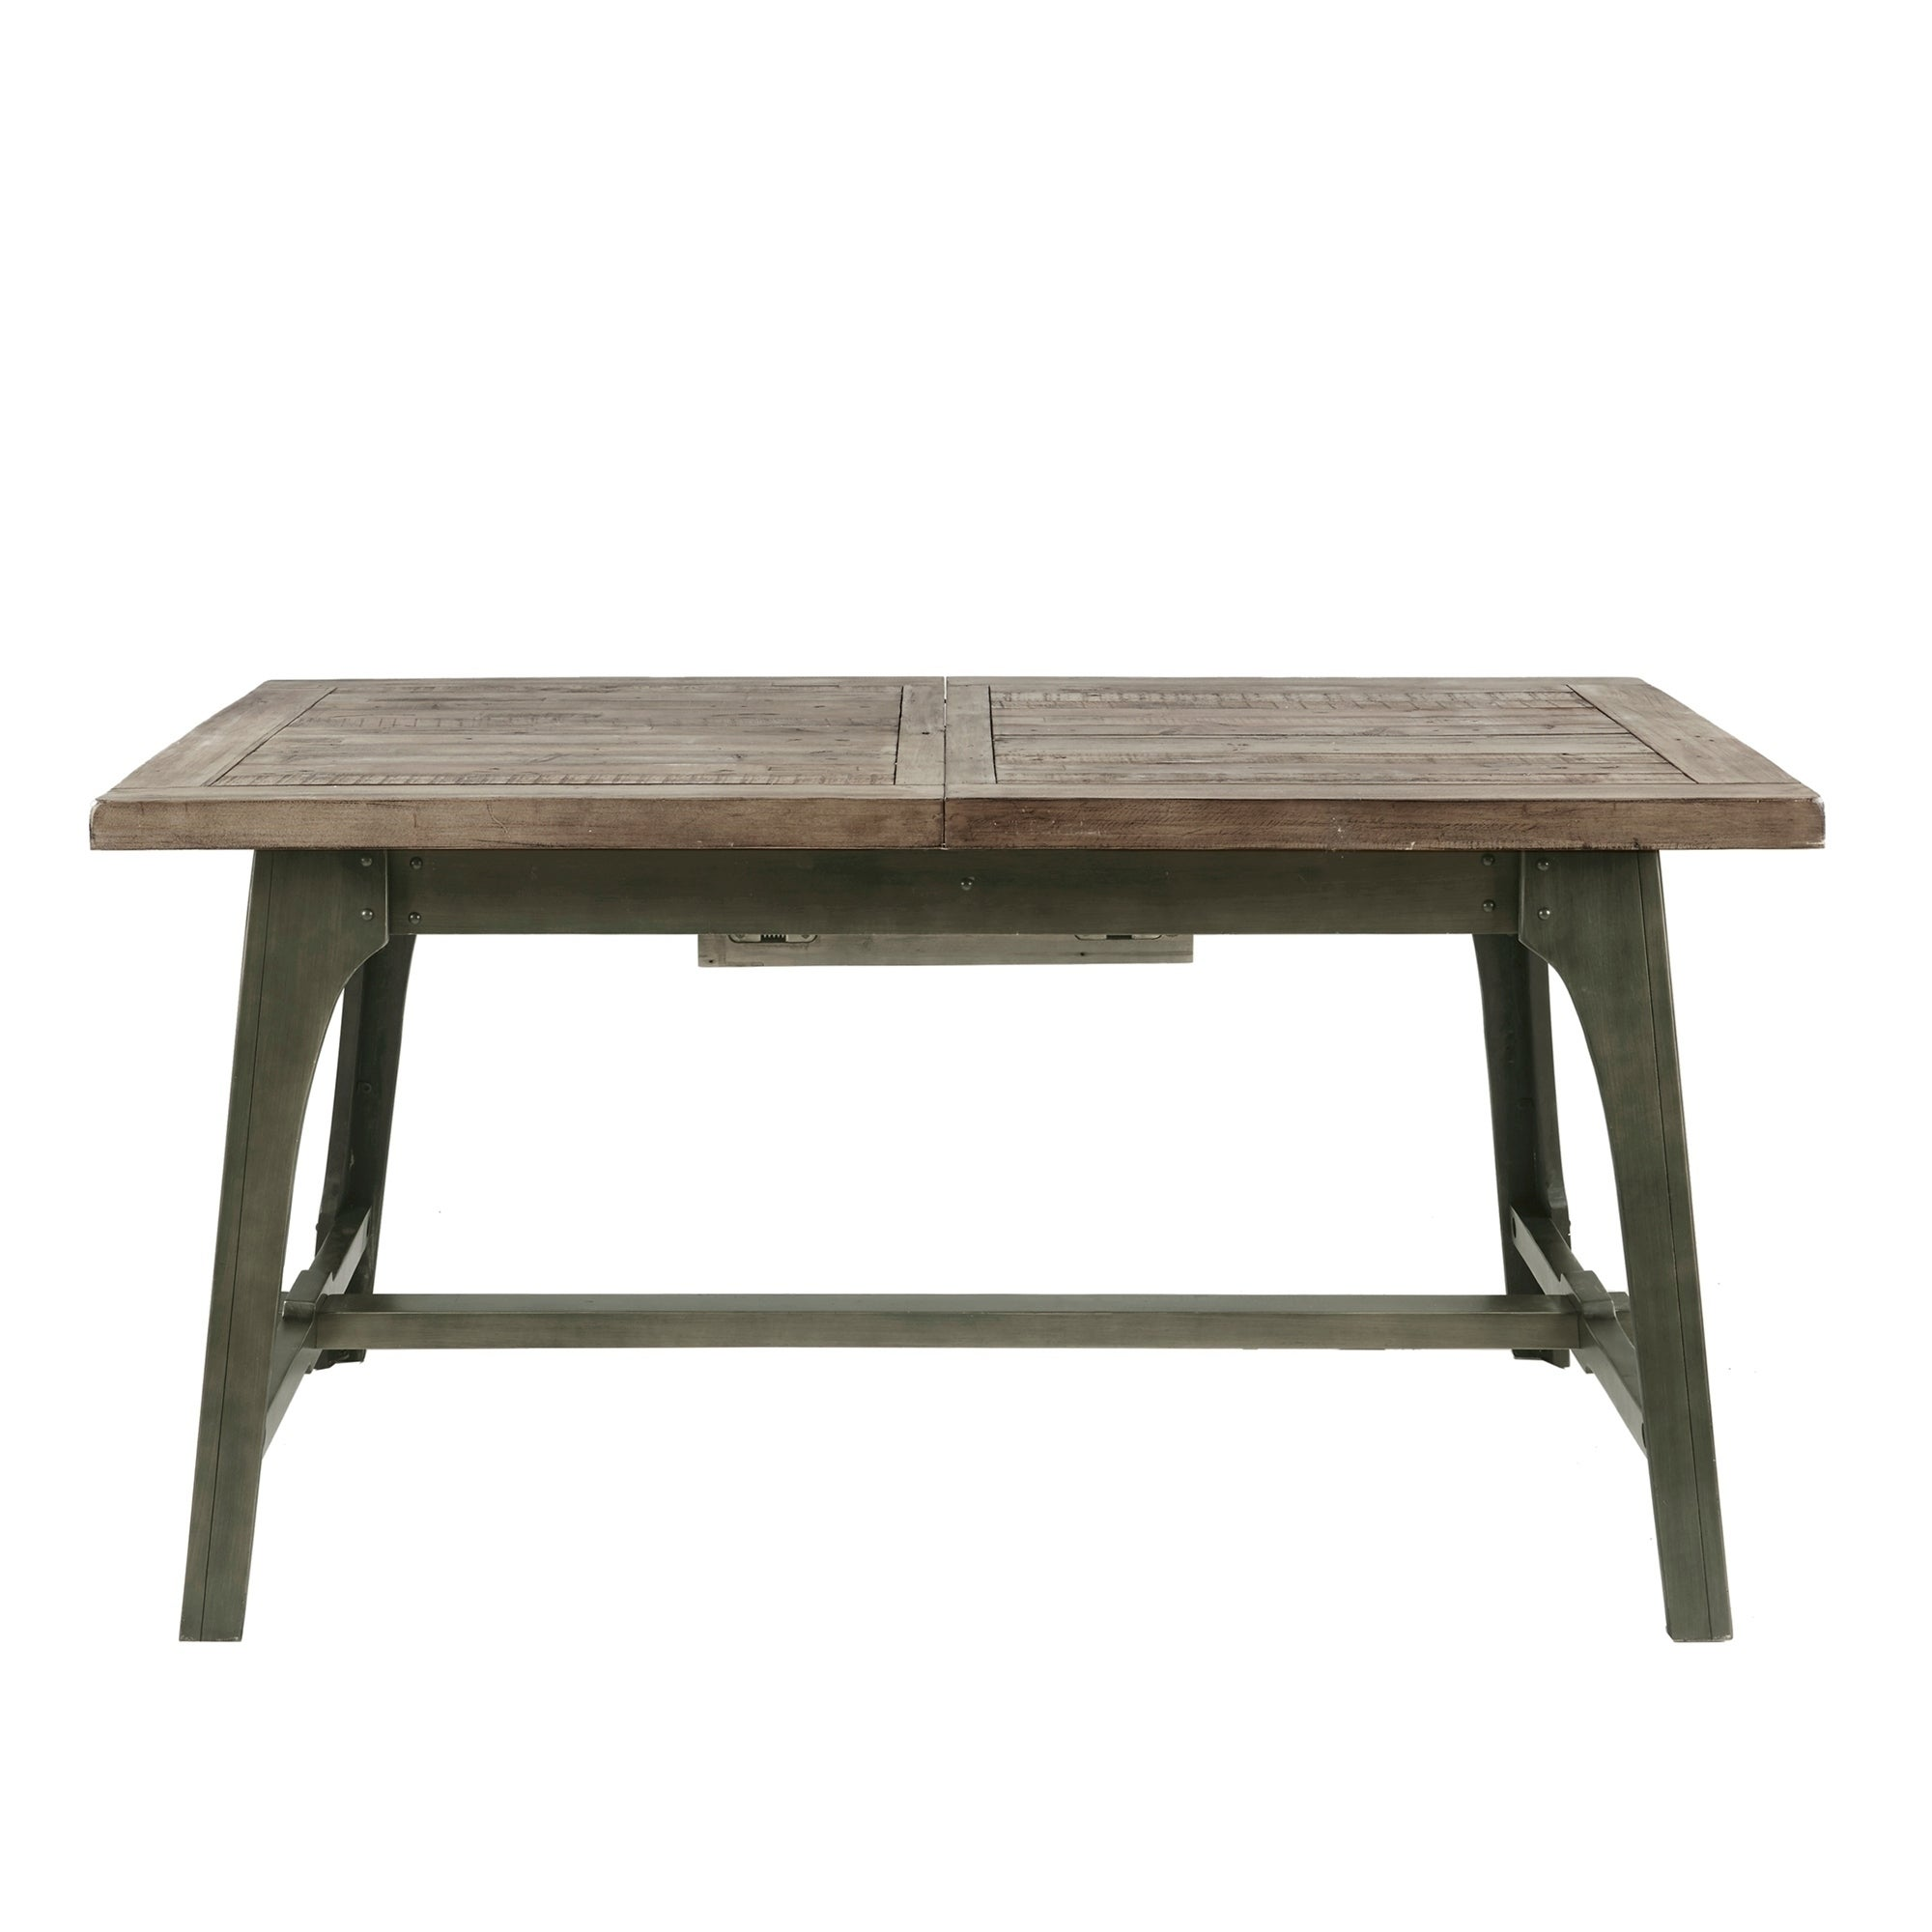 Shop Carbon Loft Chloe Grey Extension Dining Table Overstock 21417001